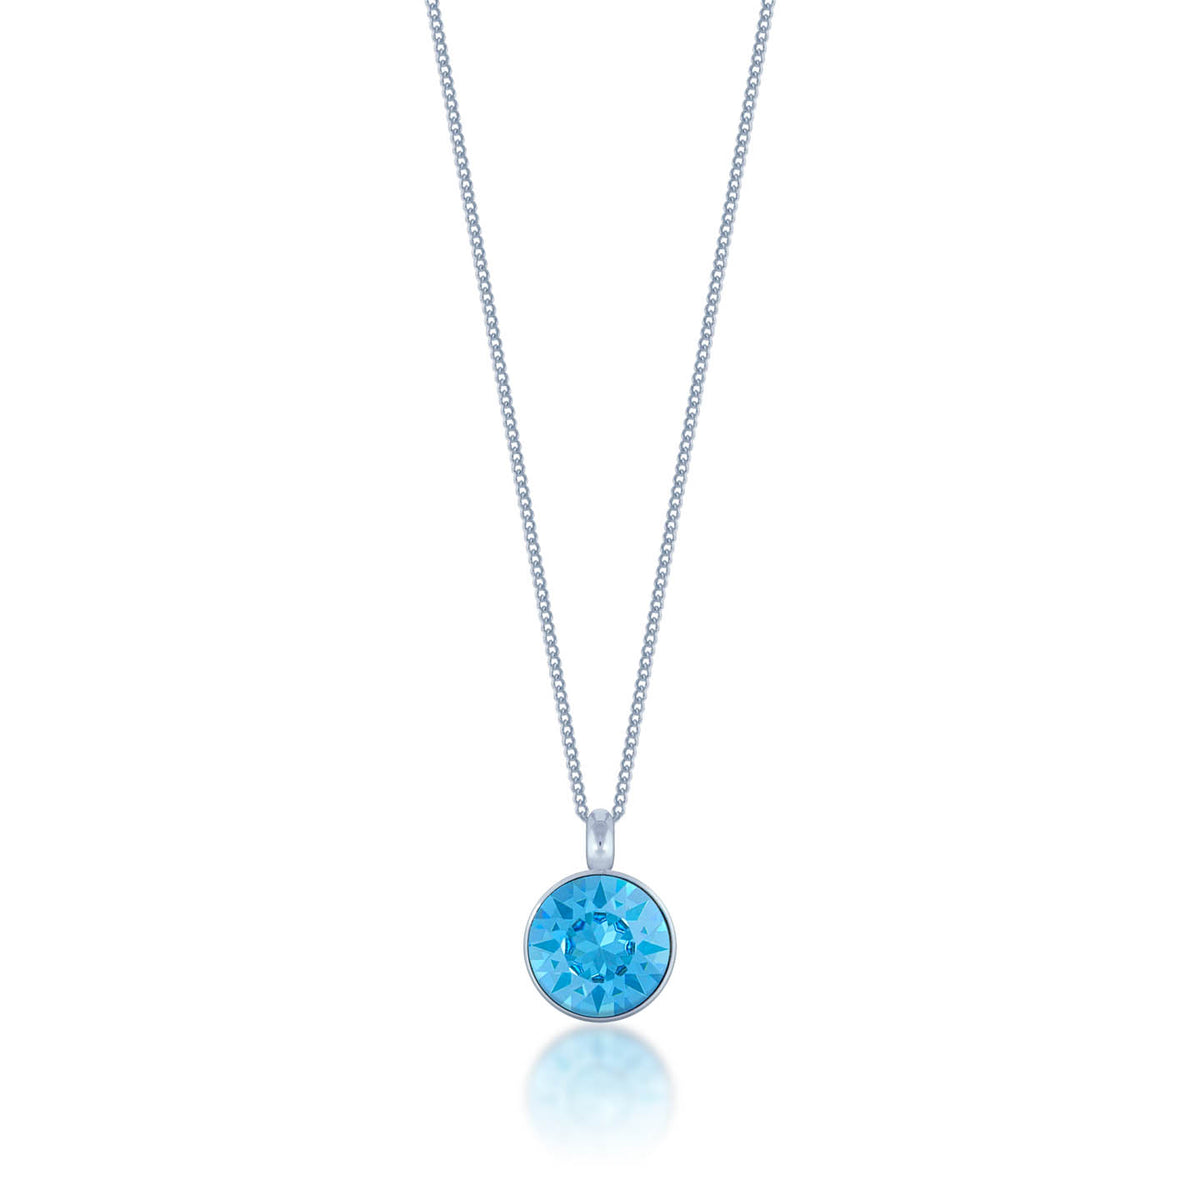 Bella Pendant Necklace with Blue Aquamarine Round Crystals from Swarovski Silver Toned Rhodium Plated - Ed Heart